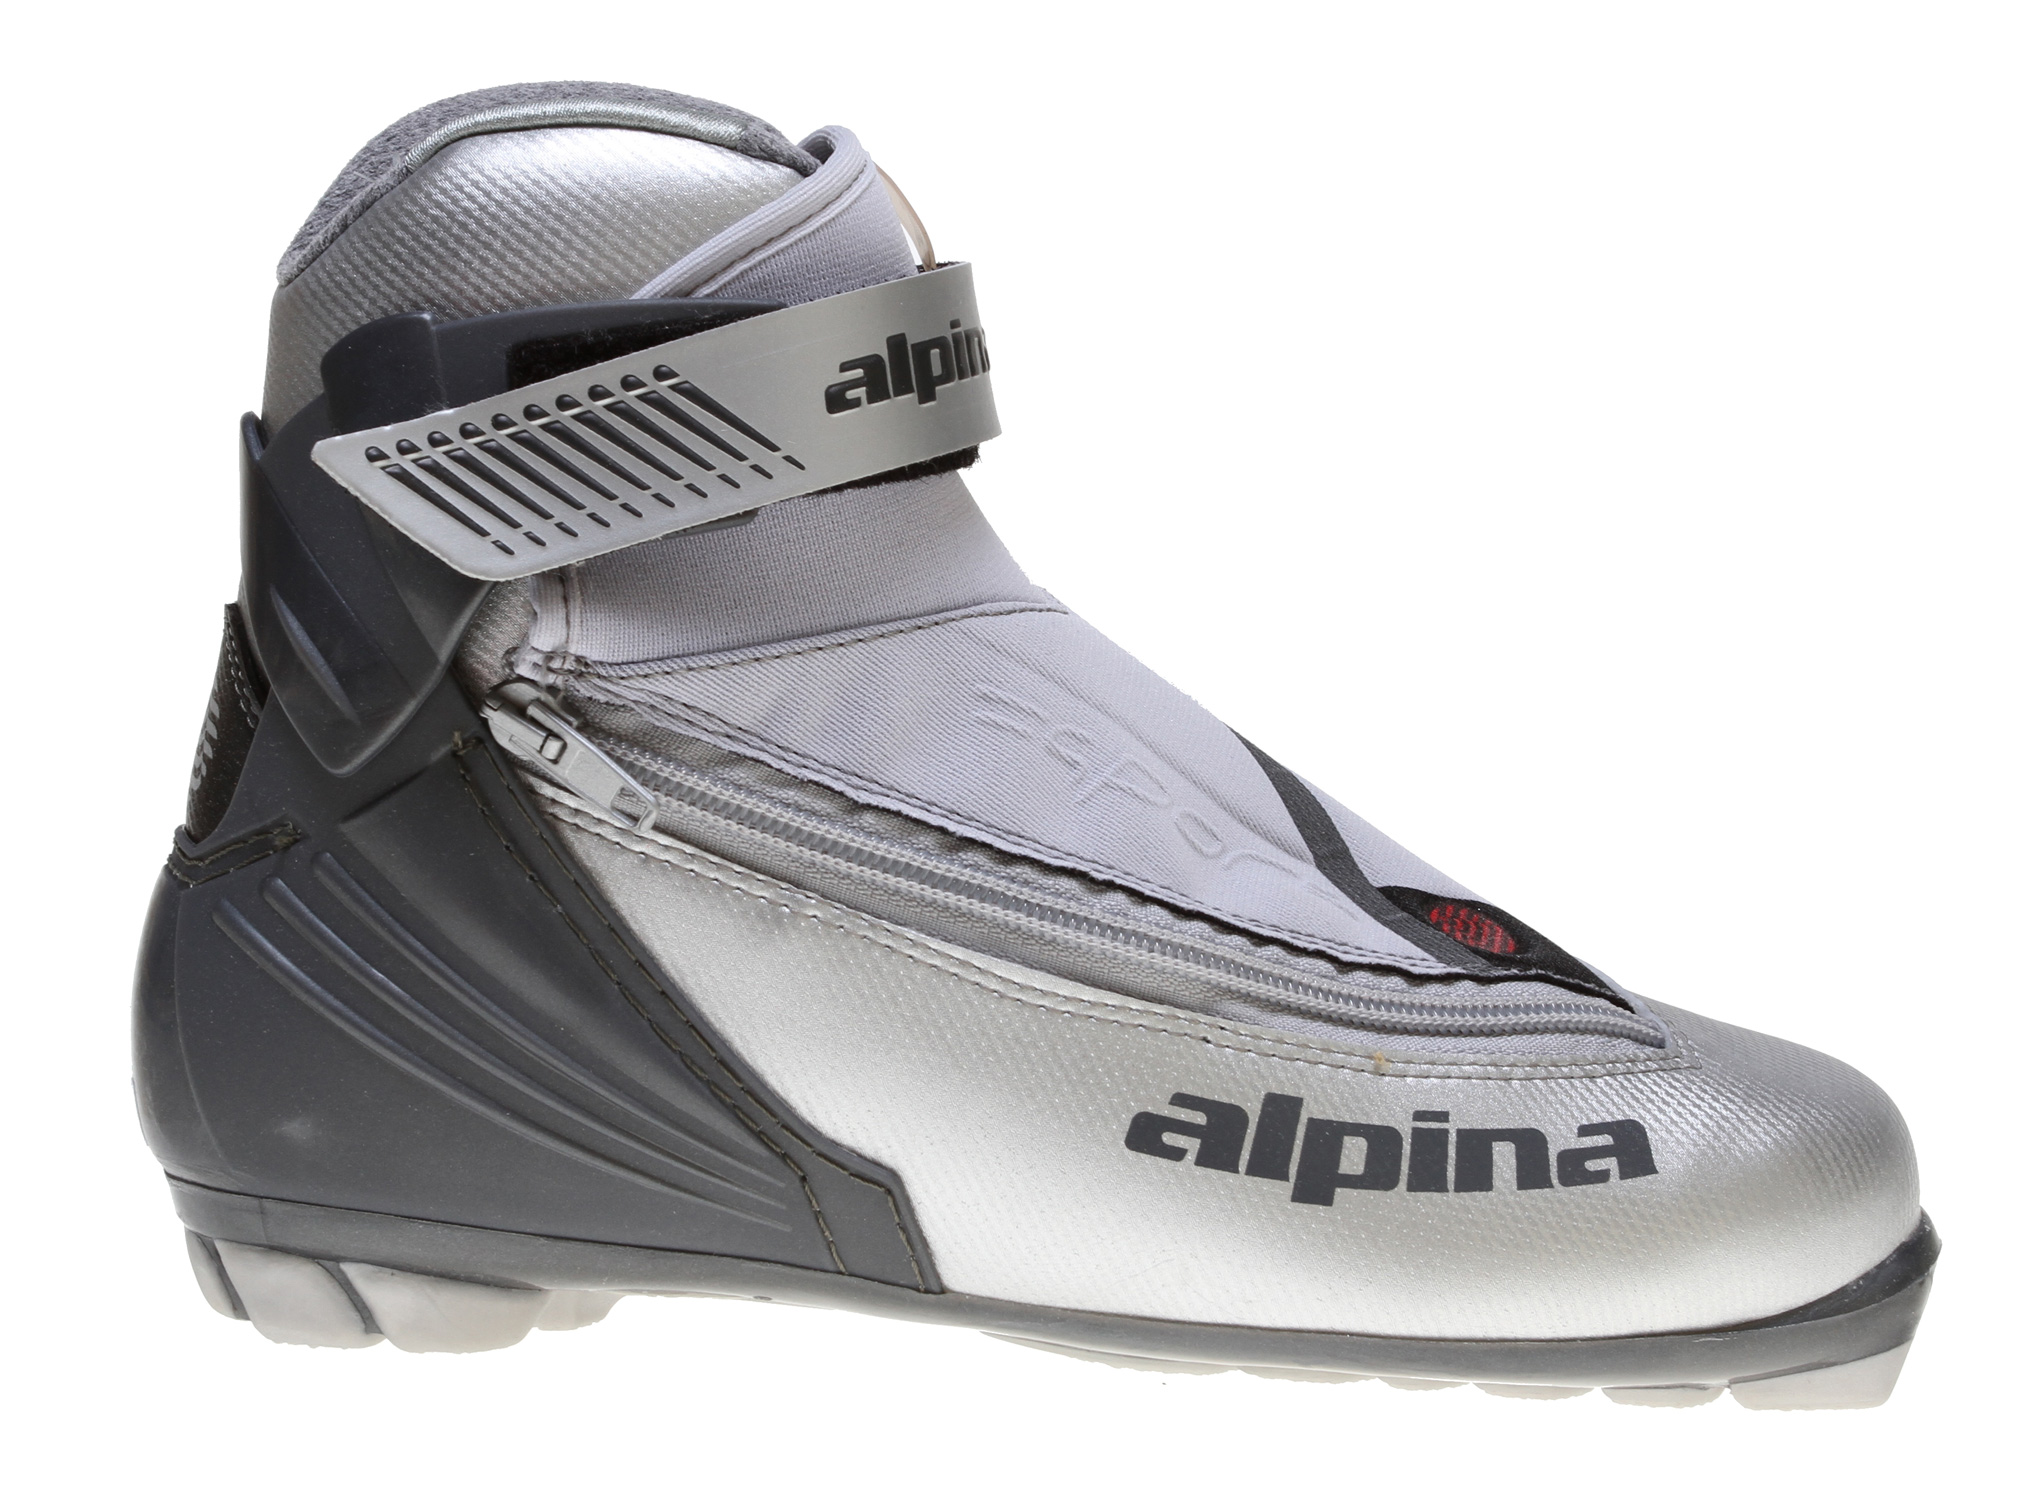 Ski The 2011 Alpina T25L nordic touring ski boots feature a women-specific fit that delivers all day happiness to your feet, providing plenty of support, warmth and the ideal stiffness for well executed classic technique kick & glide striding in groomed nordic ski tracks and also excursions off-trail in untracked snow, exploring through the woods and across snow covered meadows & frozen lakes. The womens' Alpina T25L cross country ski boots feature superb versatility and partners perfectly with any recreational touring skis and out-the-back-door-explorer skis for use at nordic ski touring centers, on snowmobile trails, along scenic ridgelines or cruising valley floors covered with fresh unbroken snow. With the additional support provided by the plastic heel cuff, upper power strap and molded heel counter, the women's Alpina T 25L ski boots provide tremendous control, balance and stability. - $52.28